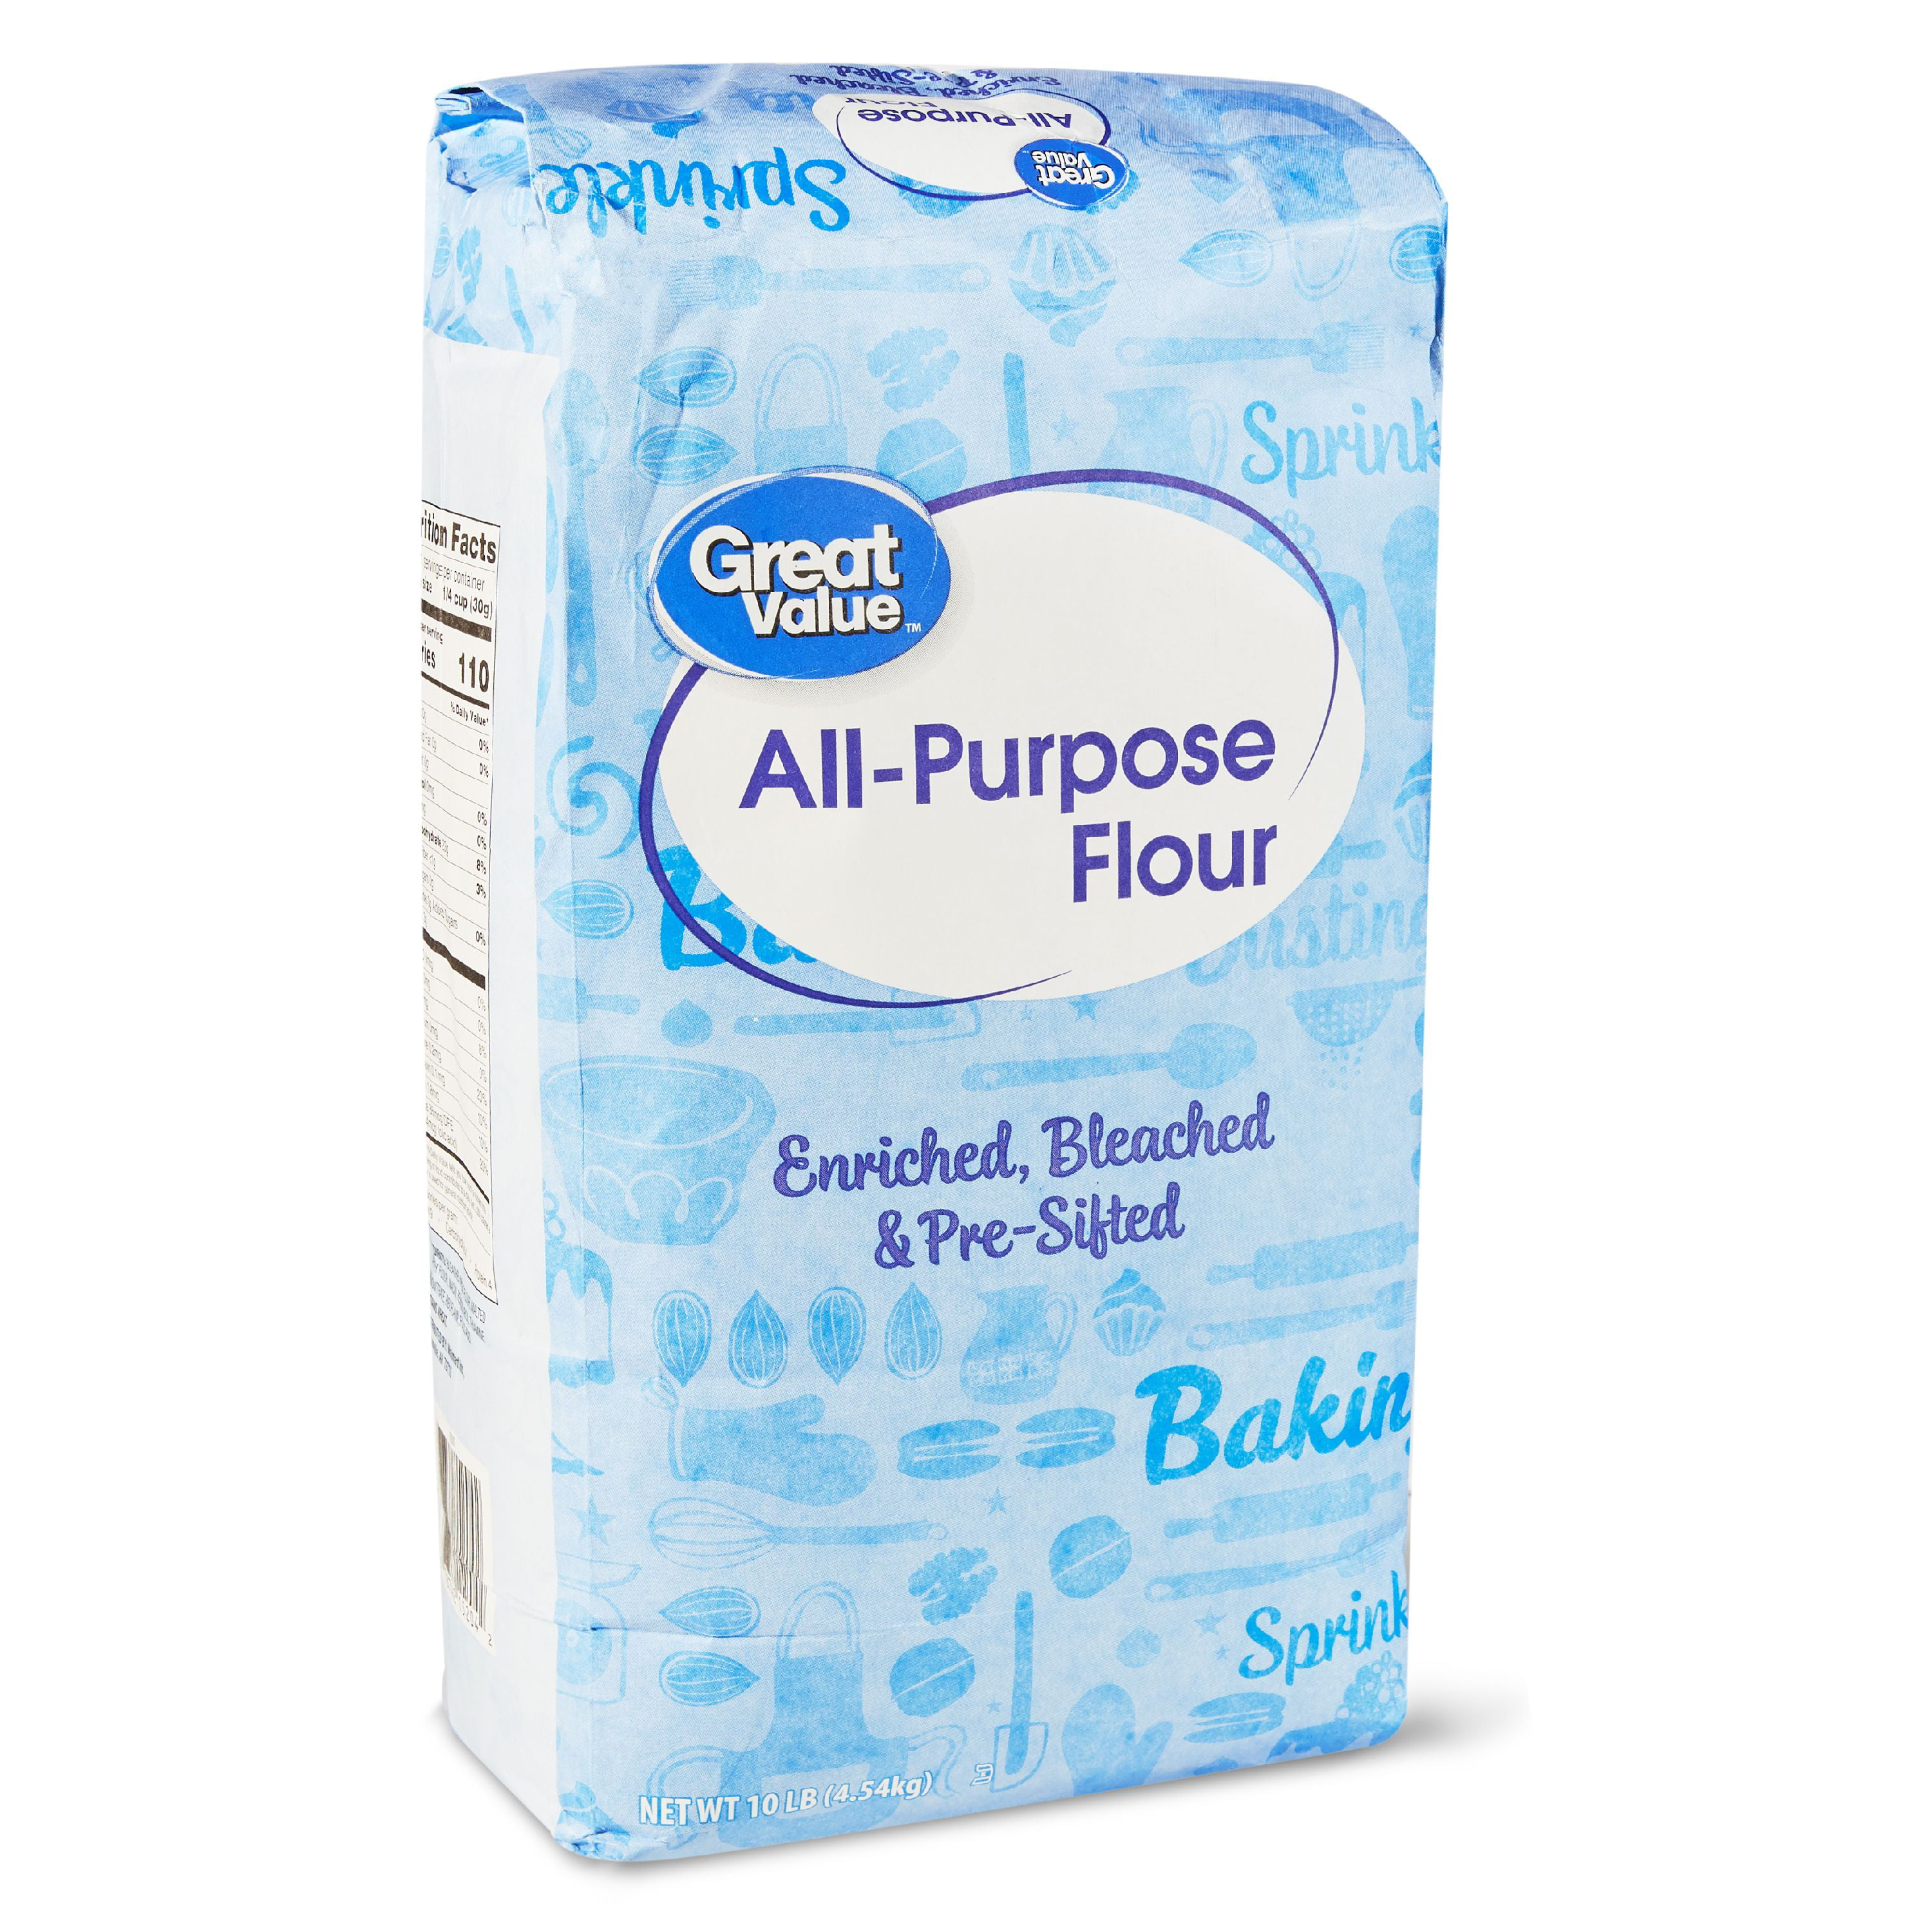 (2 Pack) Great Value All Purpose Flour. 10 Lb